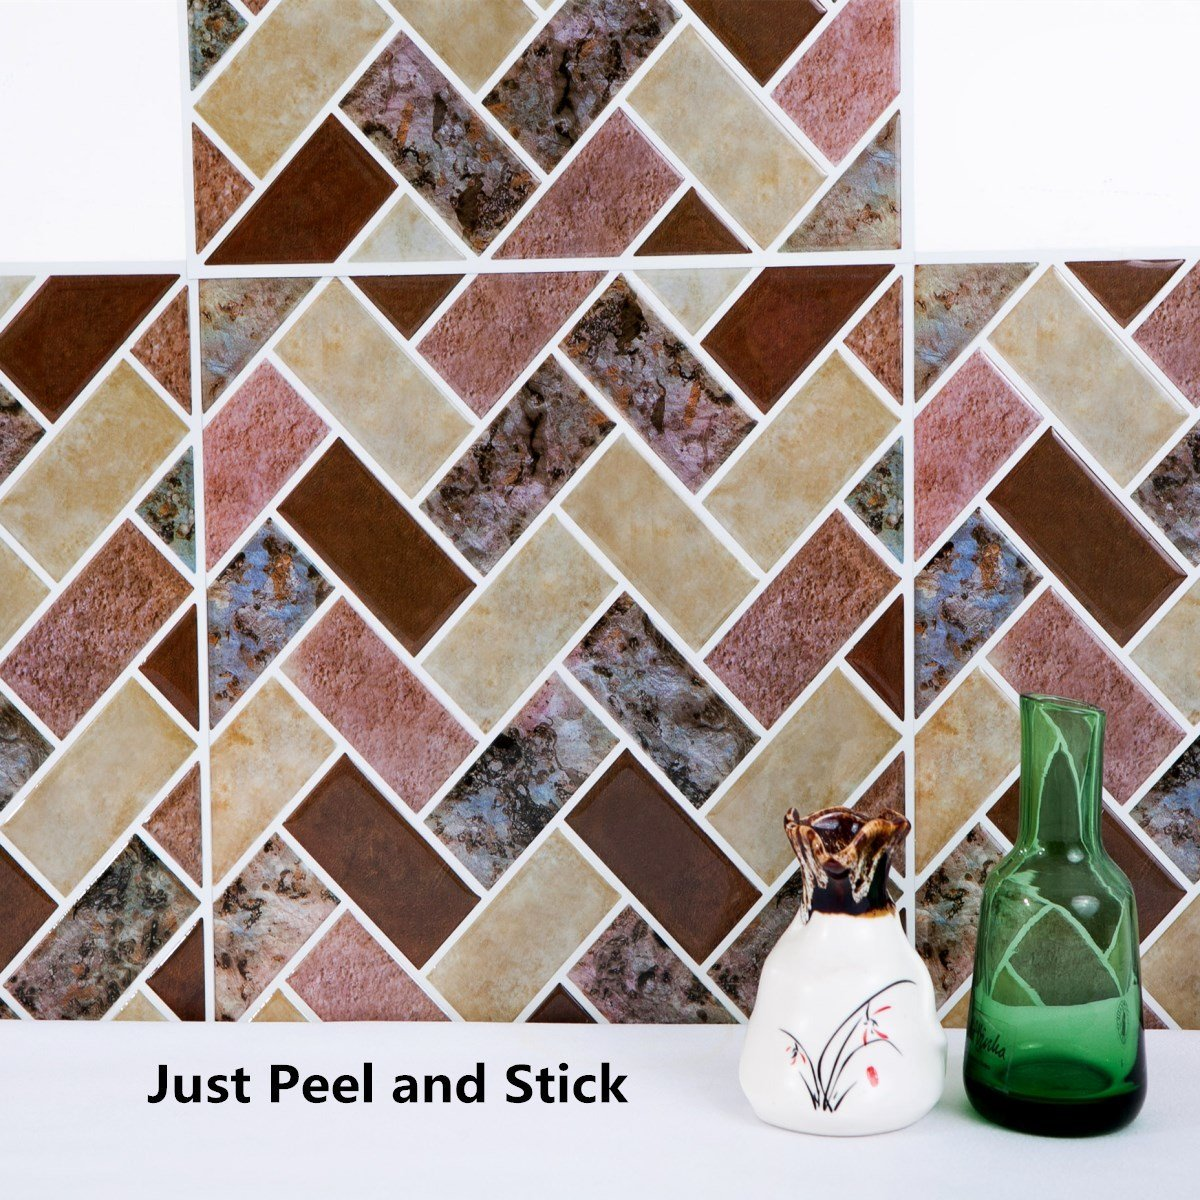 Famous 12X12 Ceramic Tiles Tiny 16 Ceramic Tile Round 18 X 18 Floor Tile 1X2 Subway Tile Young 2 X 2 Ceiling Tiles White24 X 48 Ceiling Tiles Drop Ceiling Ceramic Tile Oven, Ceramic Tile Oven Suppliers And Manufacturers ..